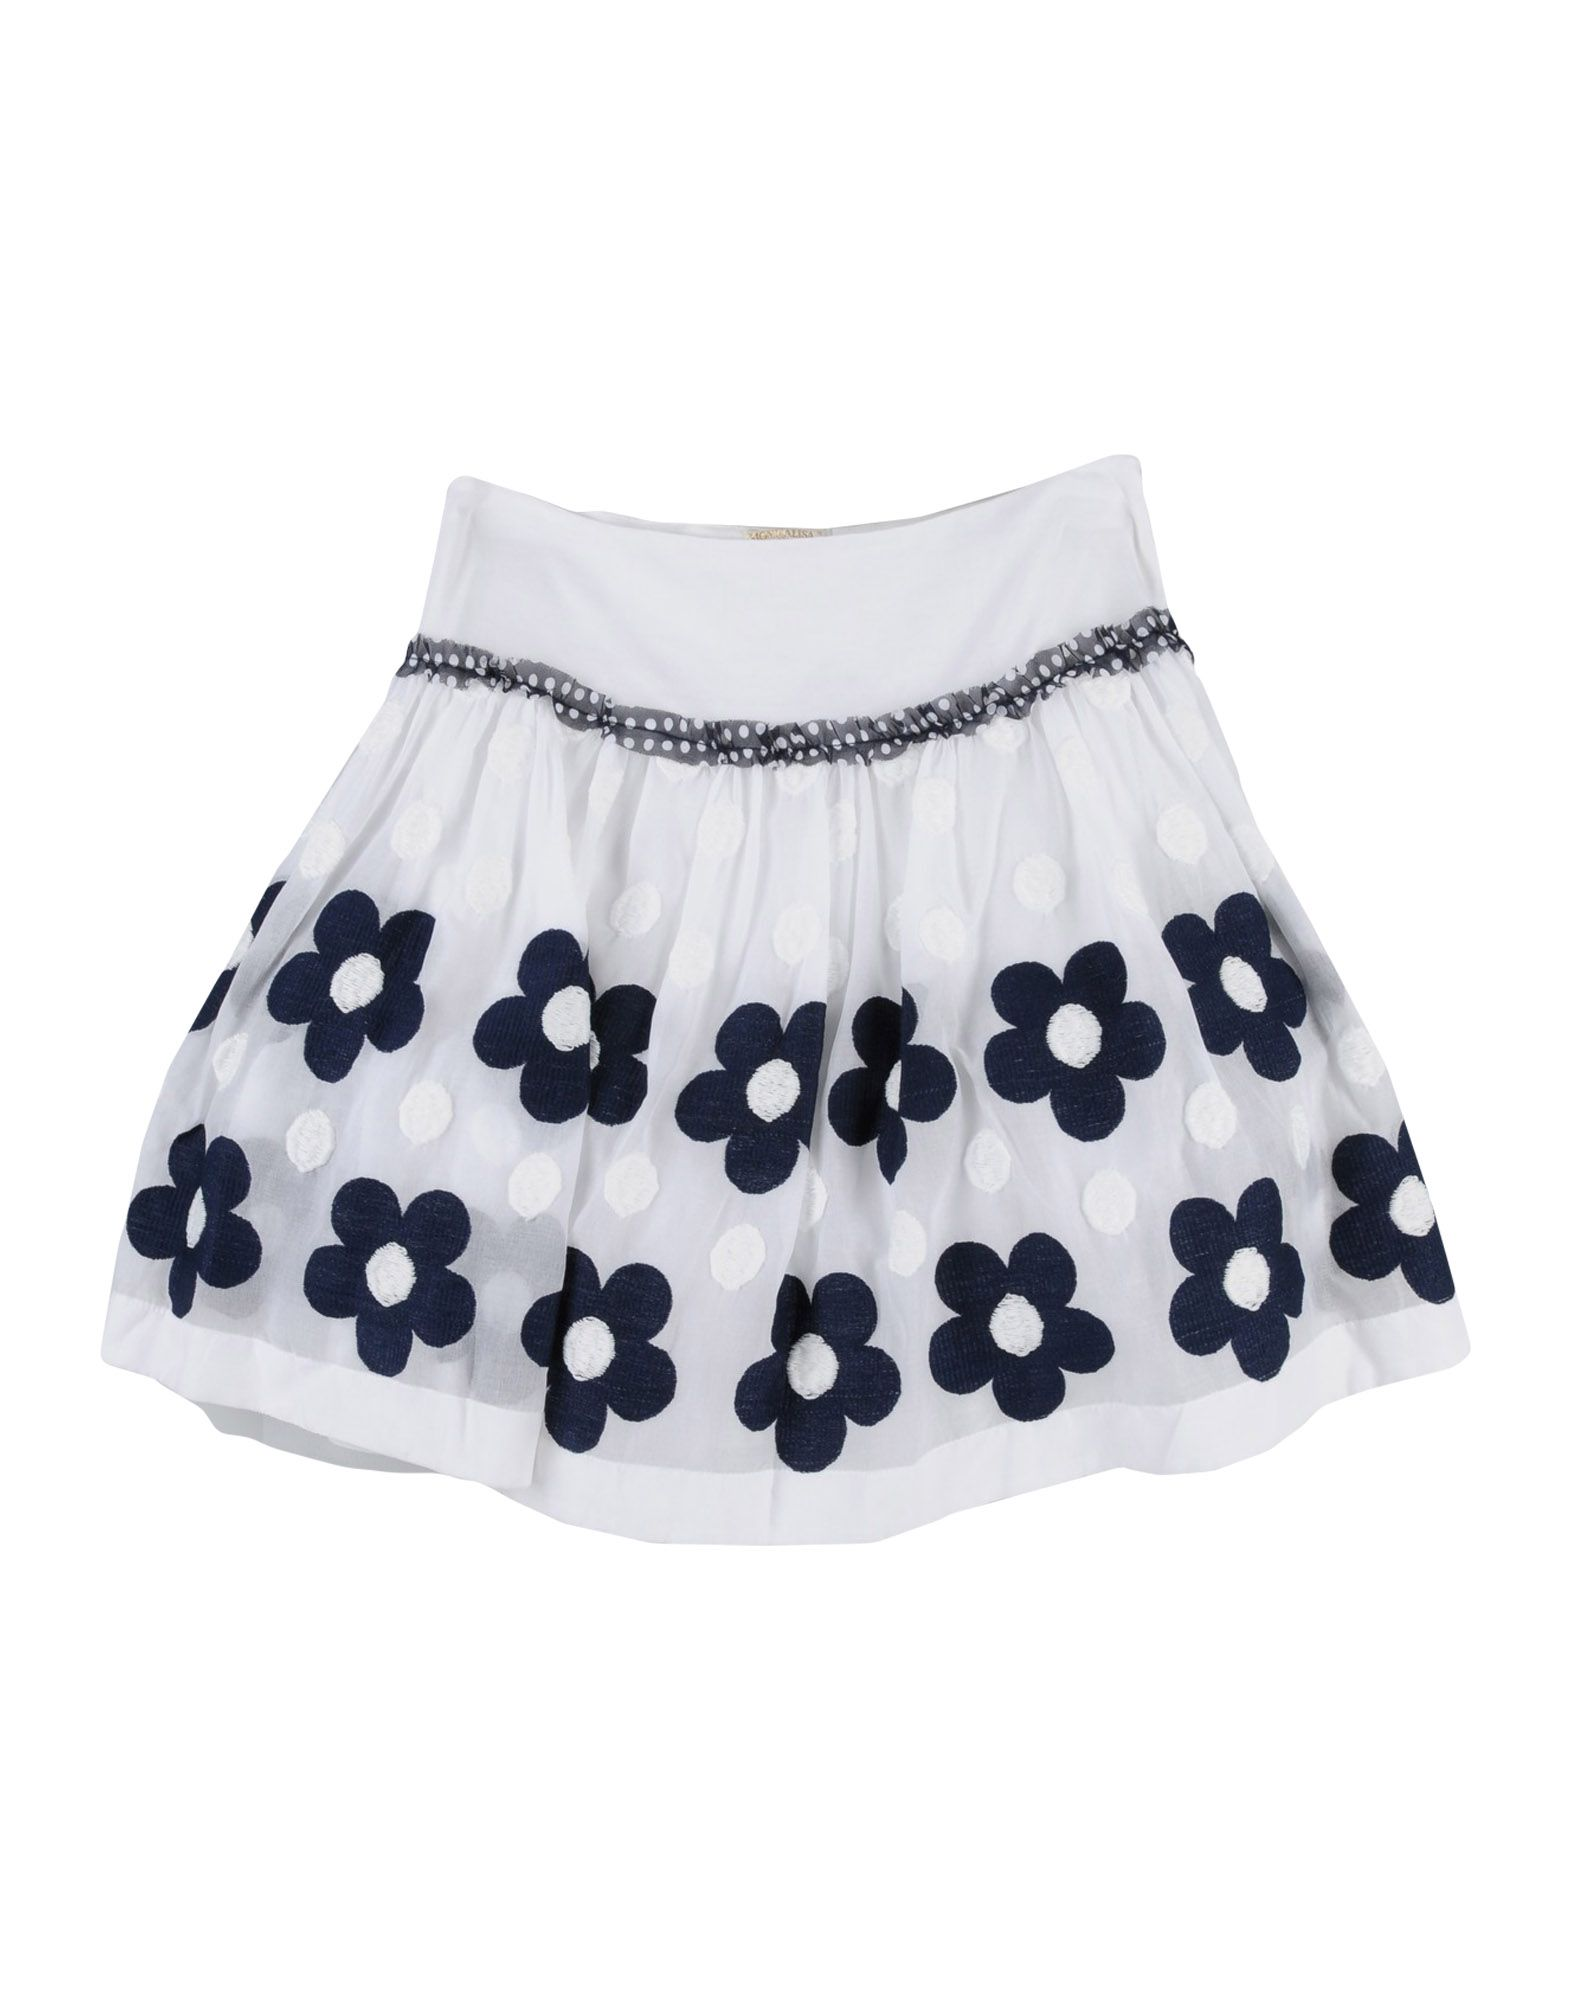 MONNALISA CHIC Skirt in White